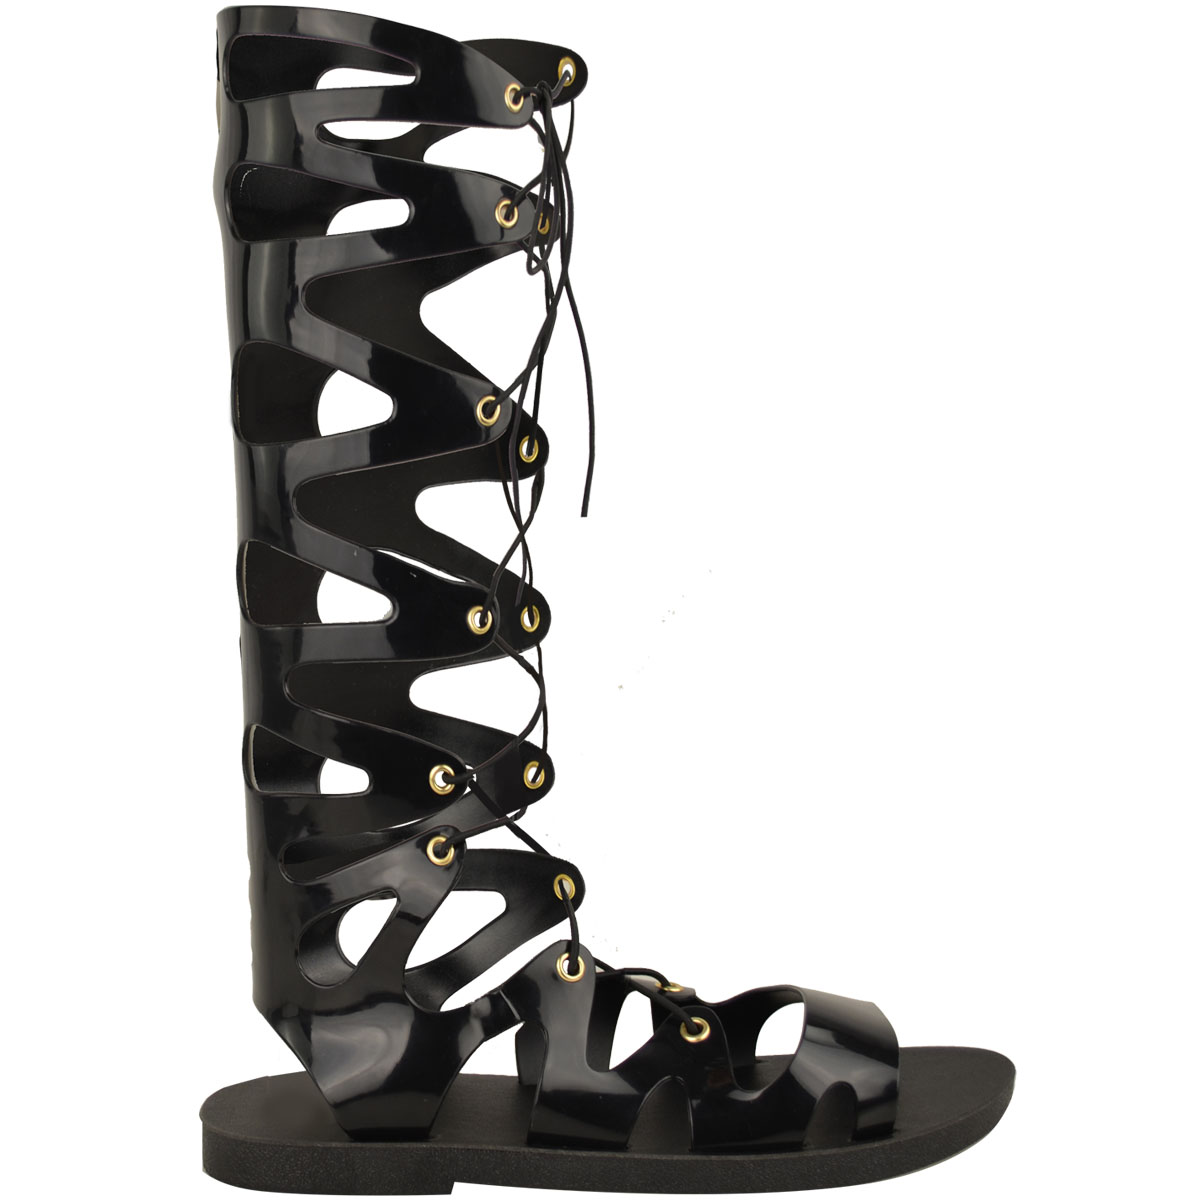 Womens-Ladies-Flat-Knee-High-Gladiator-Sandals-Strappy-Beach-Cut-Out-Boots-Size thumbnail 3